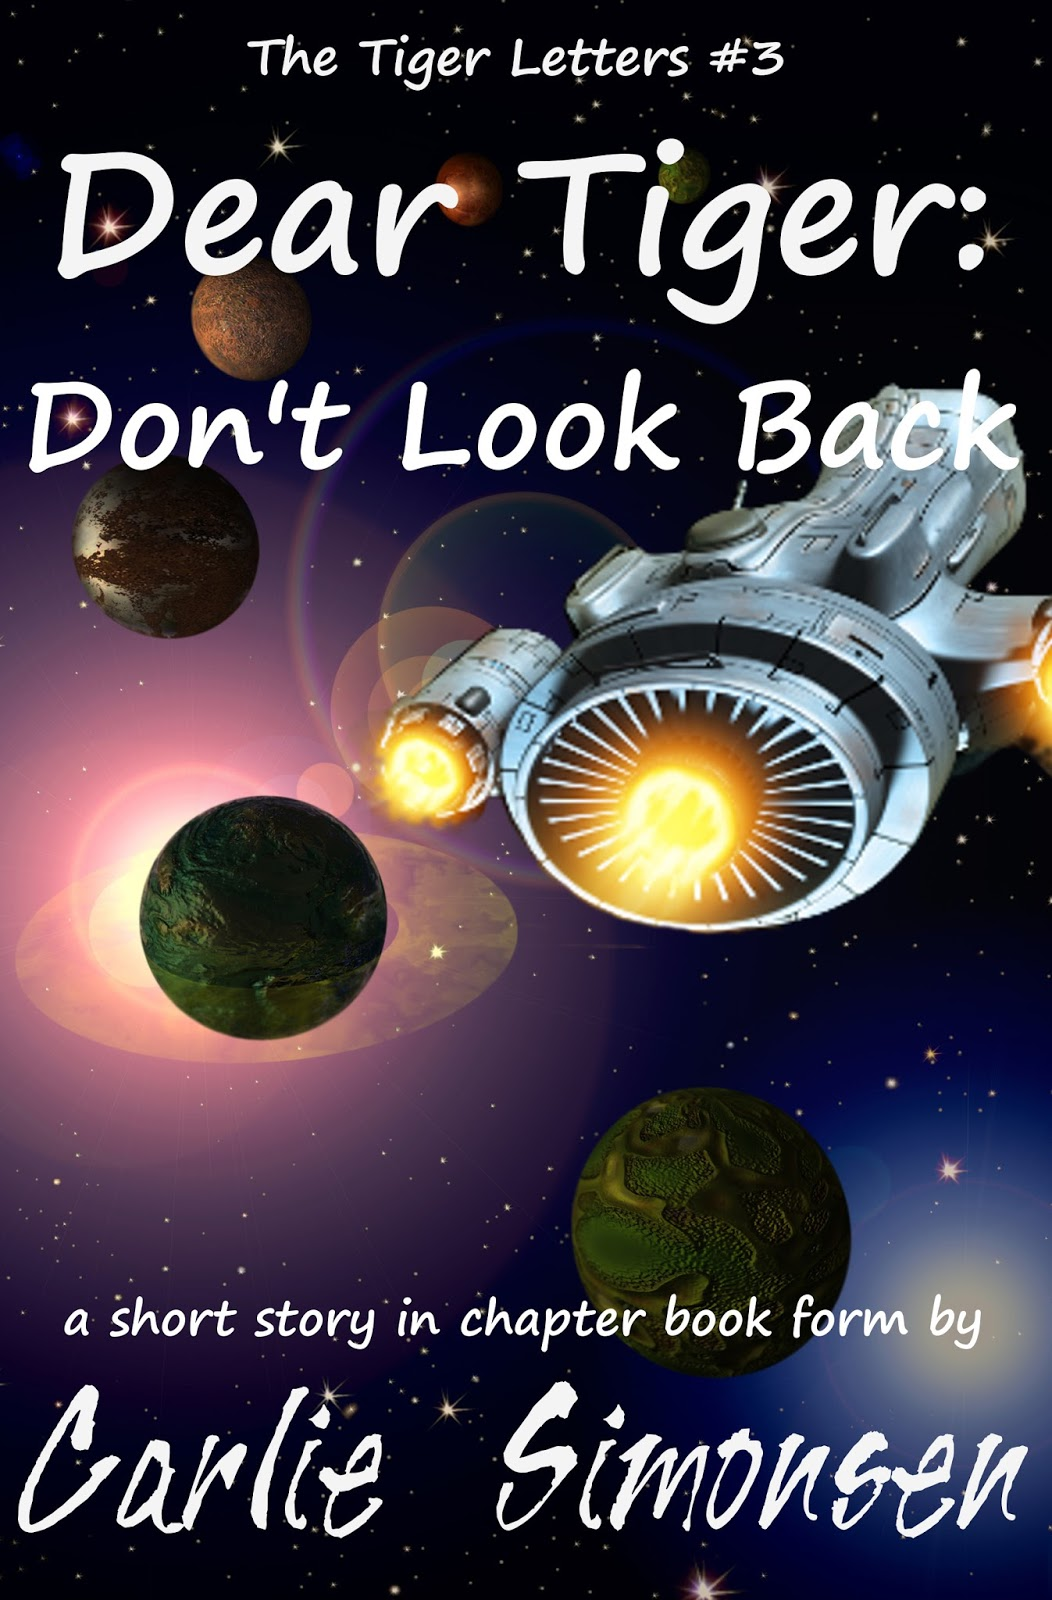 Carlie's Chapter 11 - Dear Tiger: Don't Look Back